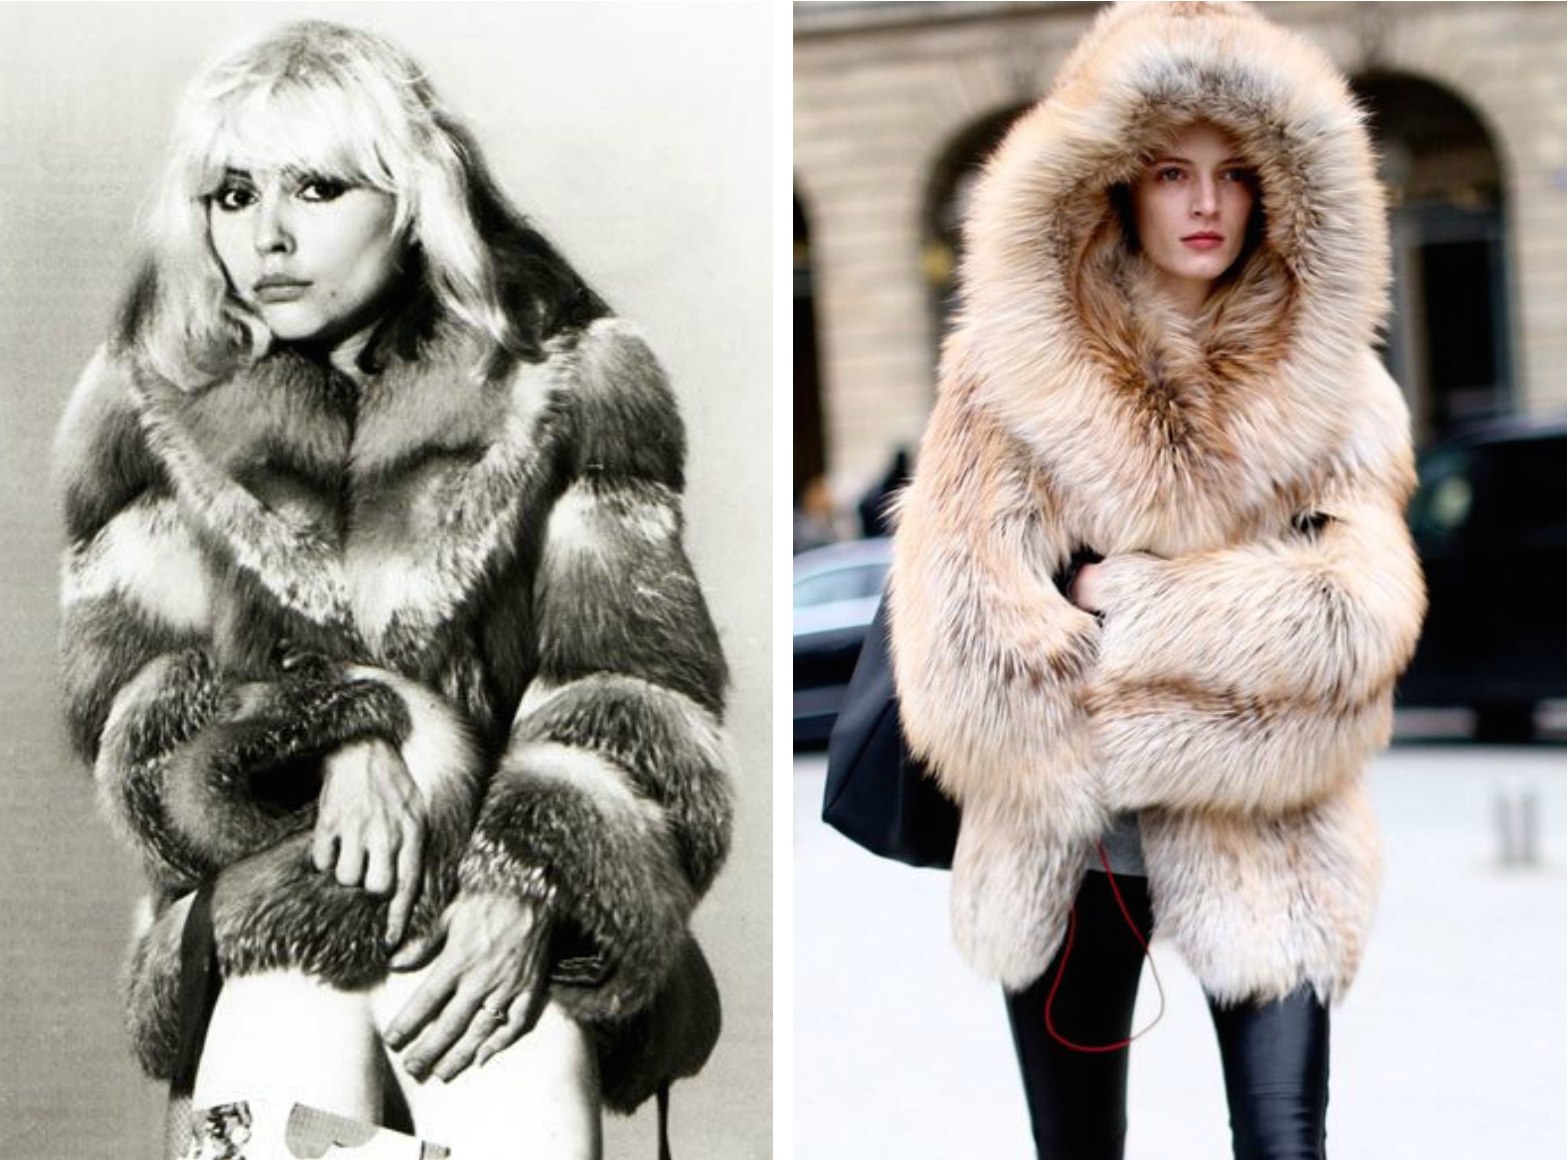 From left to right:Fashion icon, Debbie Harry (Blondie), in 1970 wearing a beautiful fur jacket, and fur jacket for Fall 2014 street style.